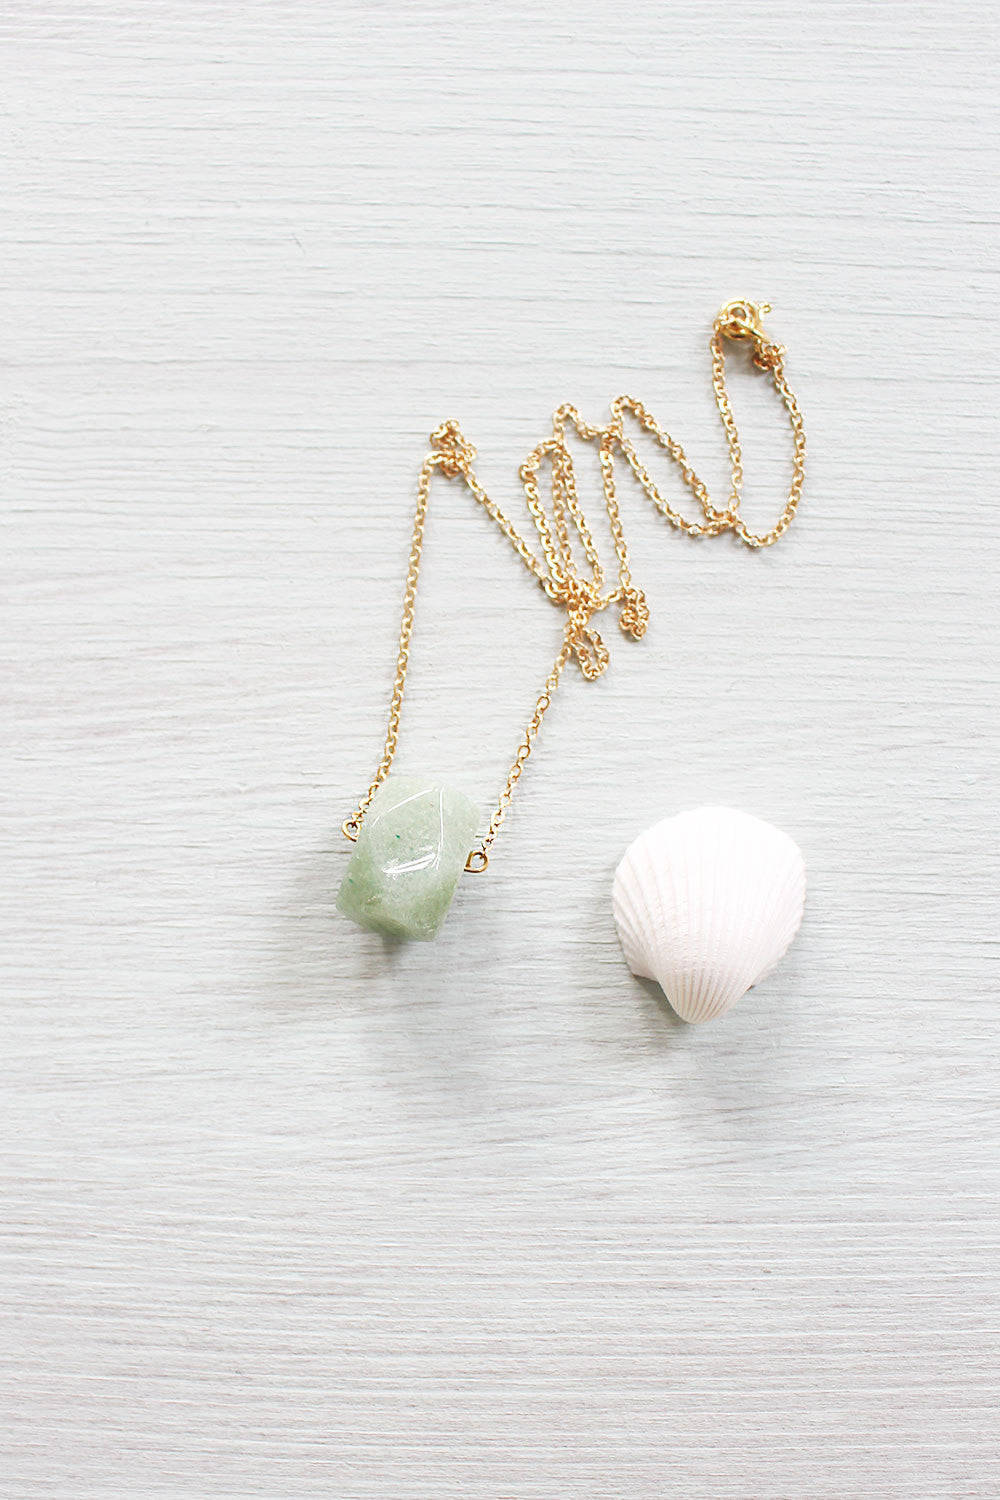 Small Aventurine Nugget Necklace